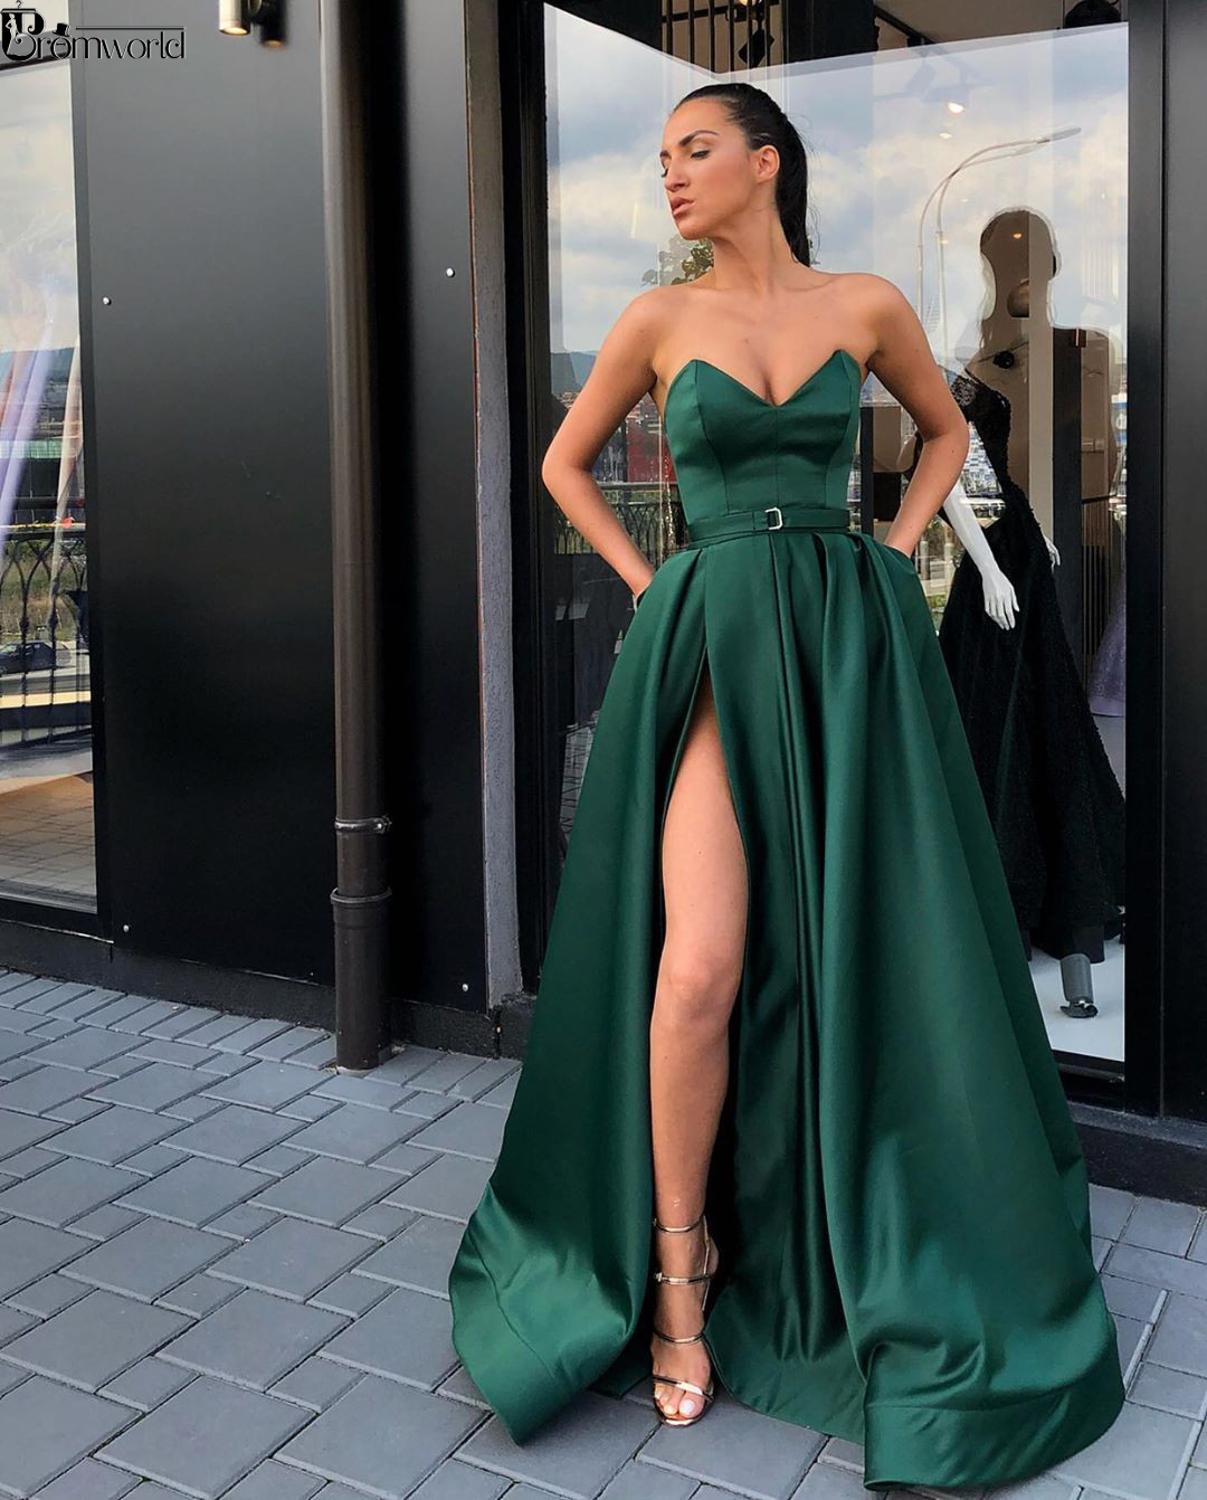 Elegant Sweetheart Party Gown Satin Sexy   Prom     Dress   Emerald Green High Slit Plus Size   Prom     Dresses   2019 Long vestido fiesta